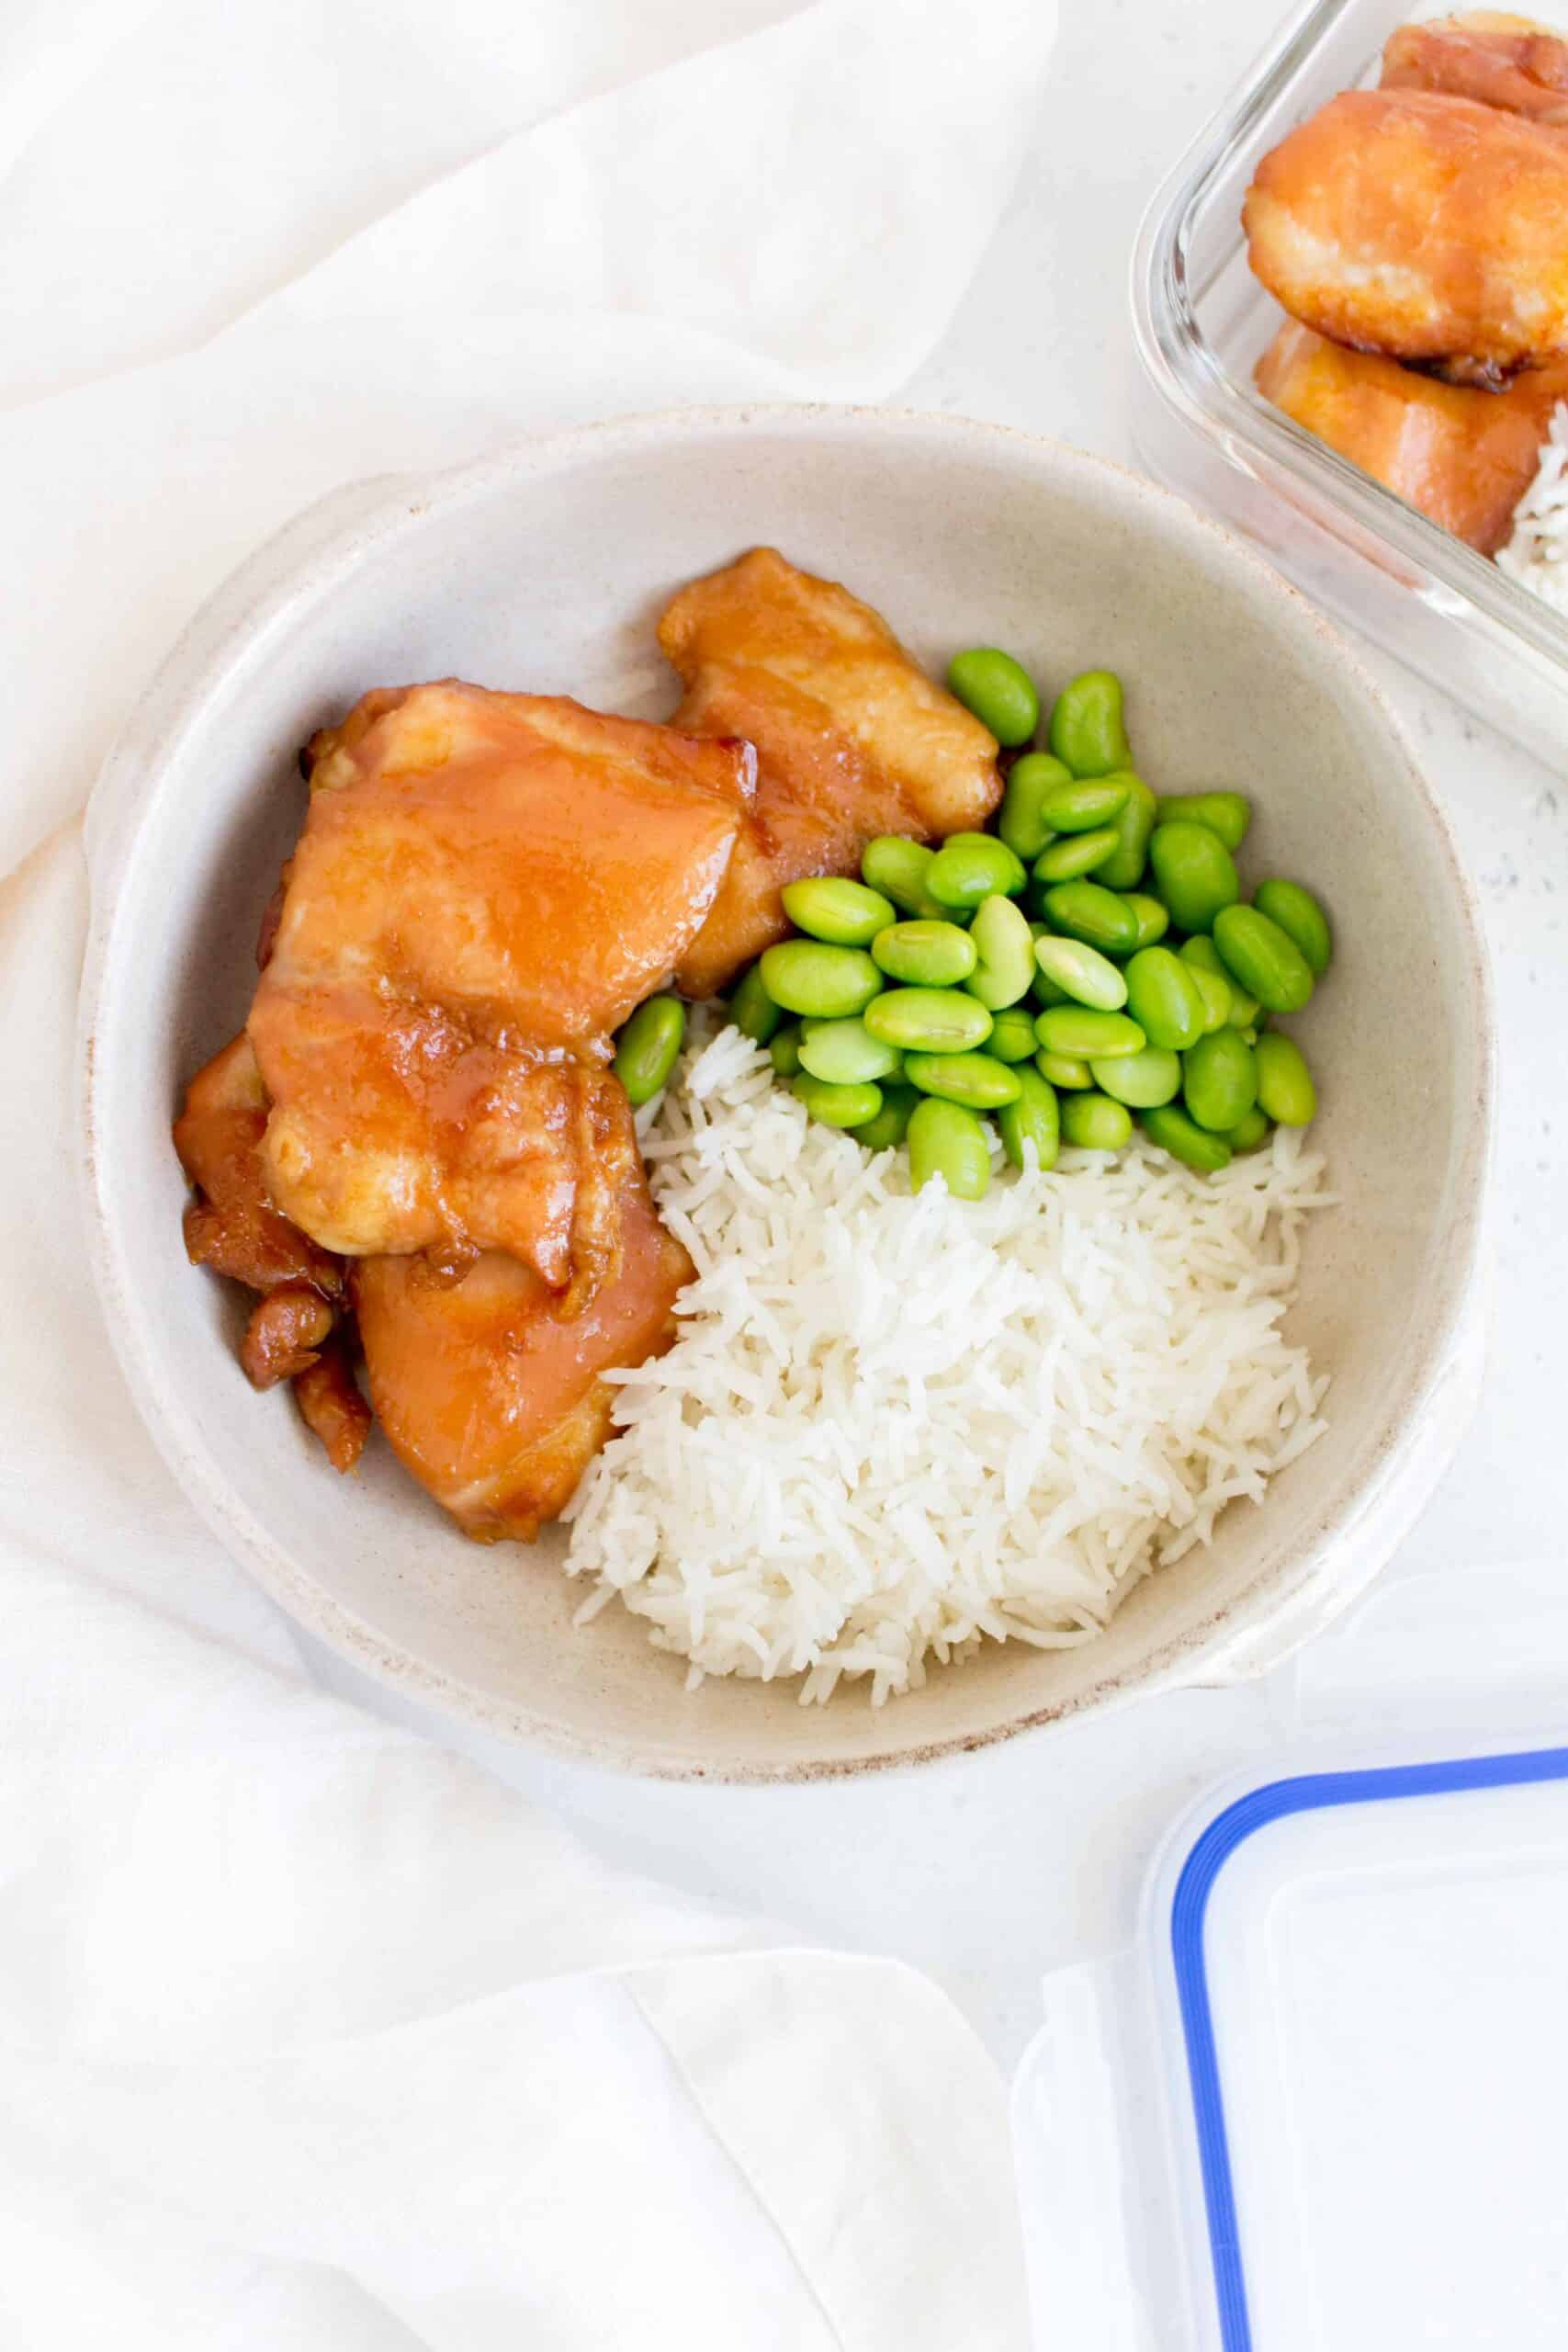 plate with honey soy chicken thighs along with a serving of rice and edamame beans